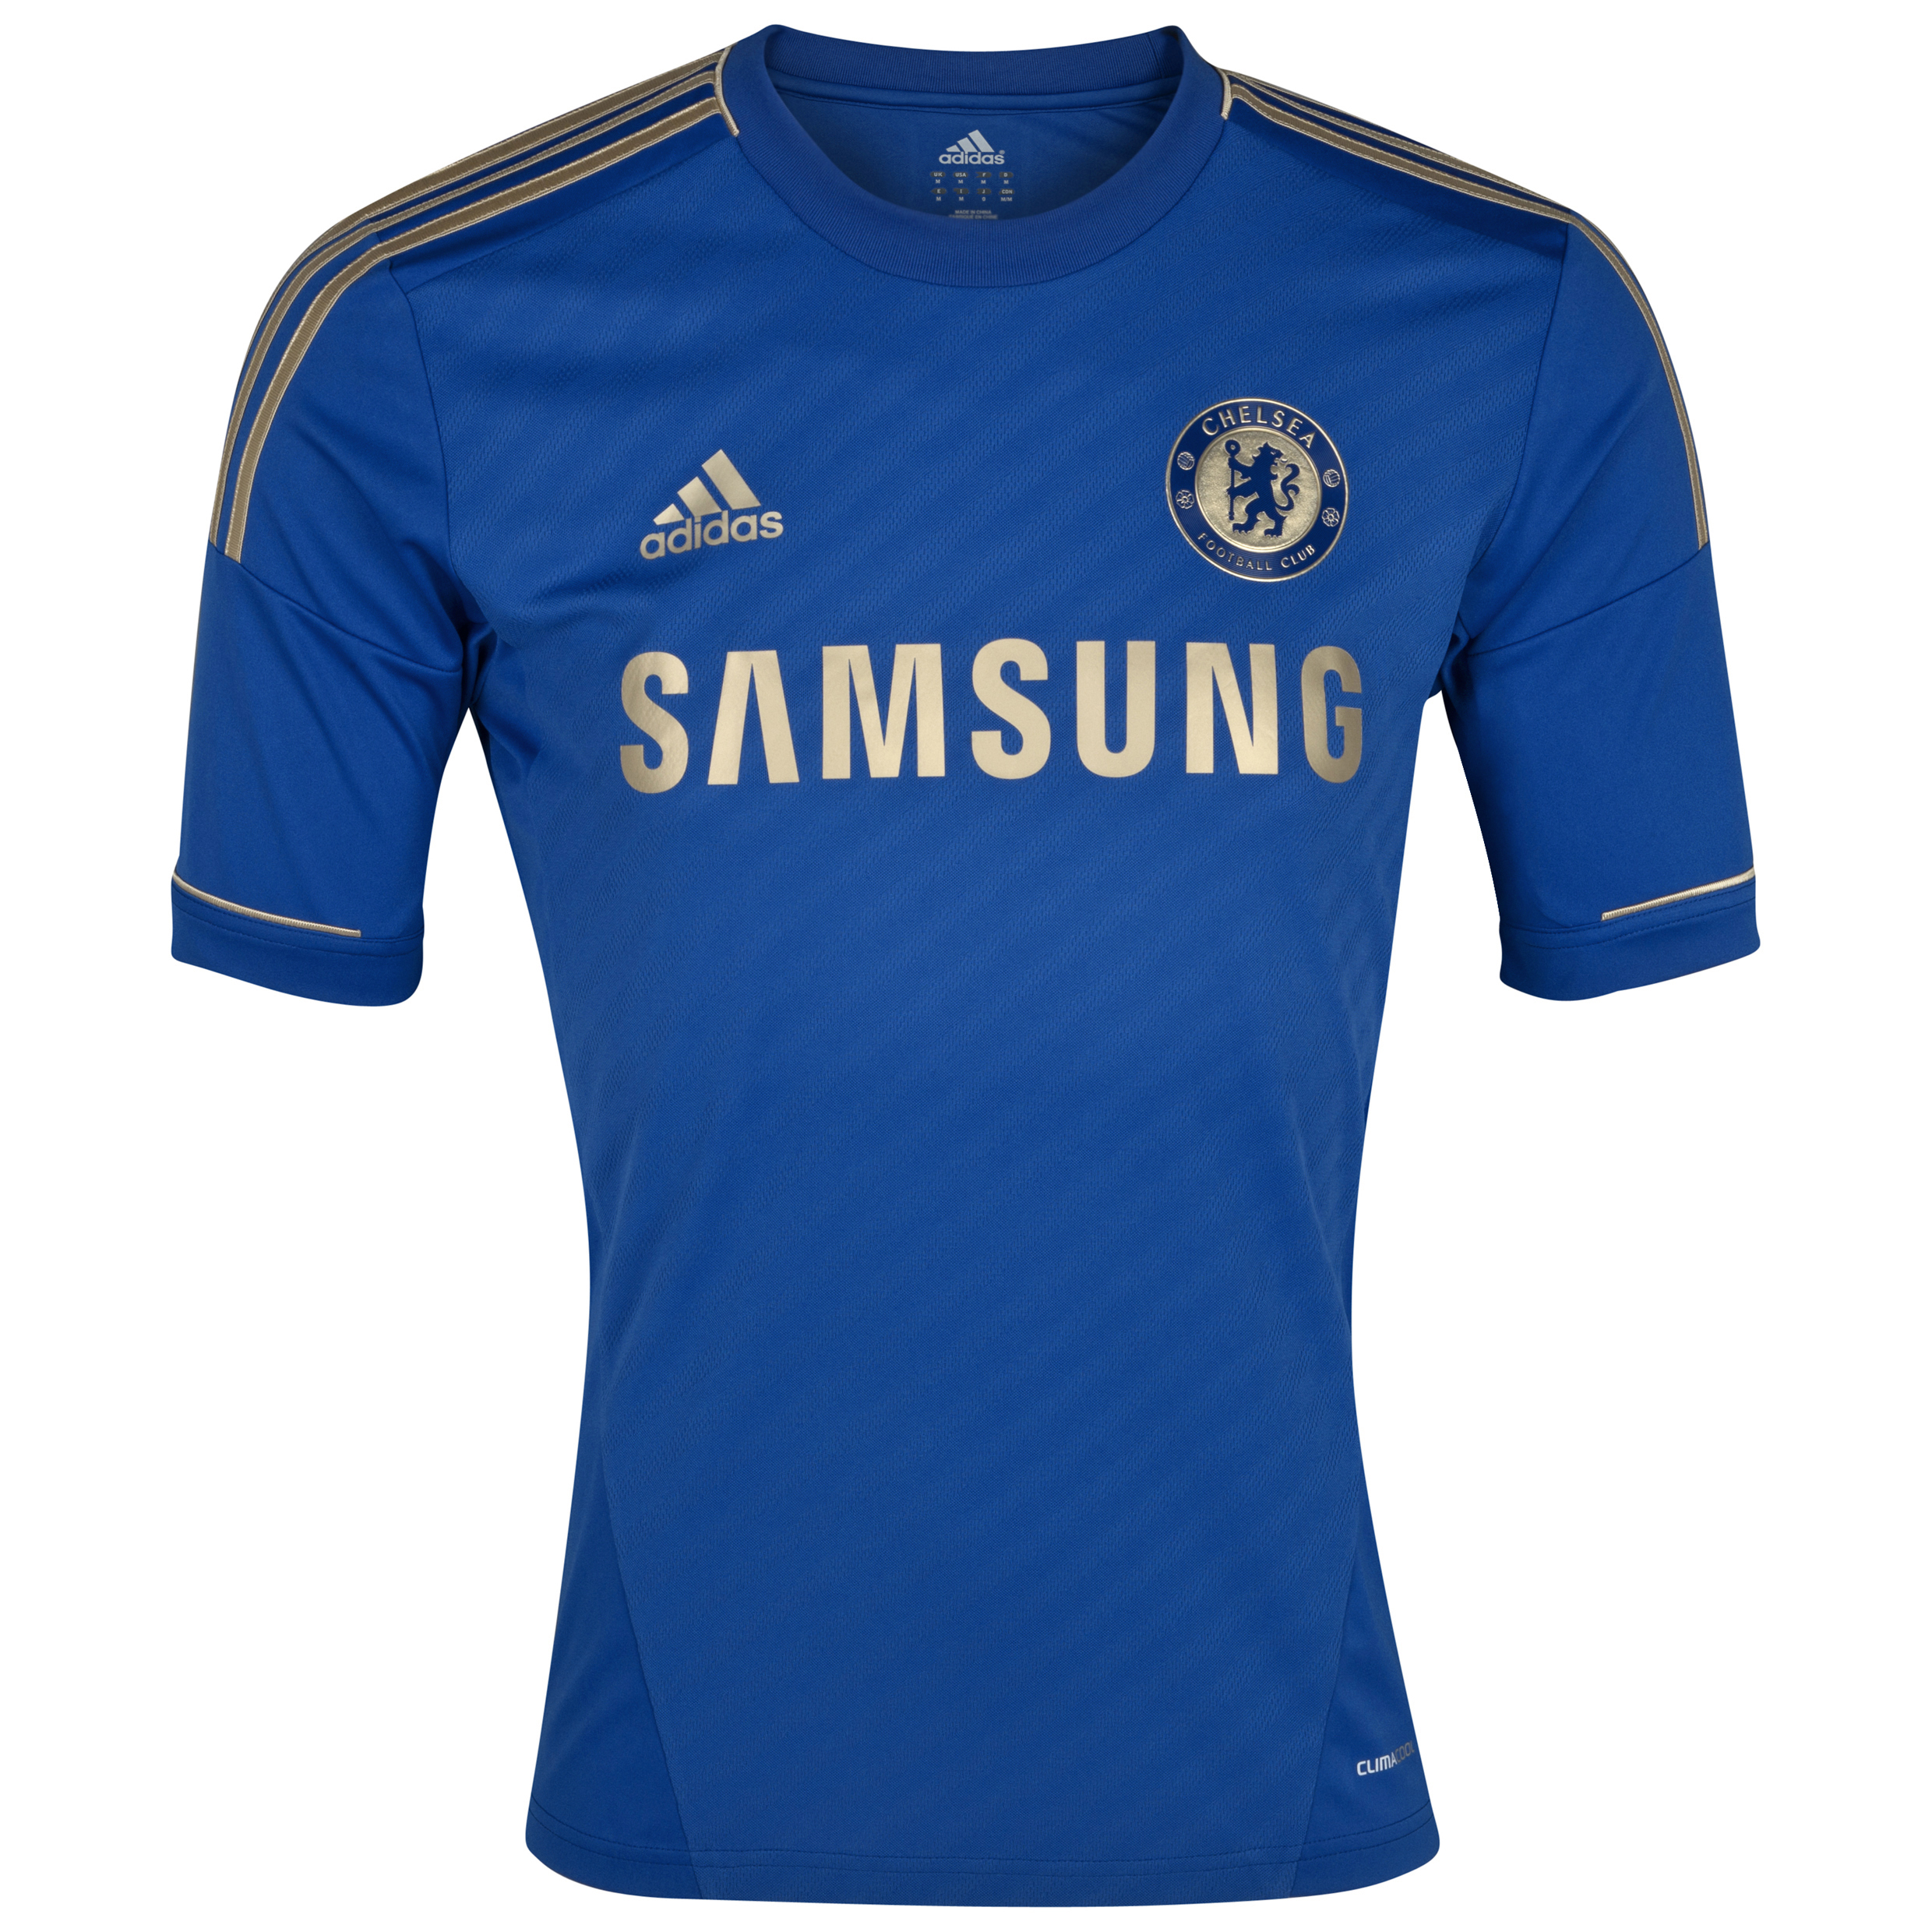 Chelsea Home Shirt 2012/13